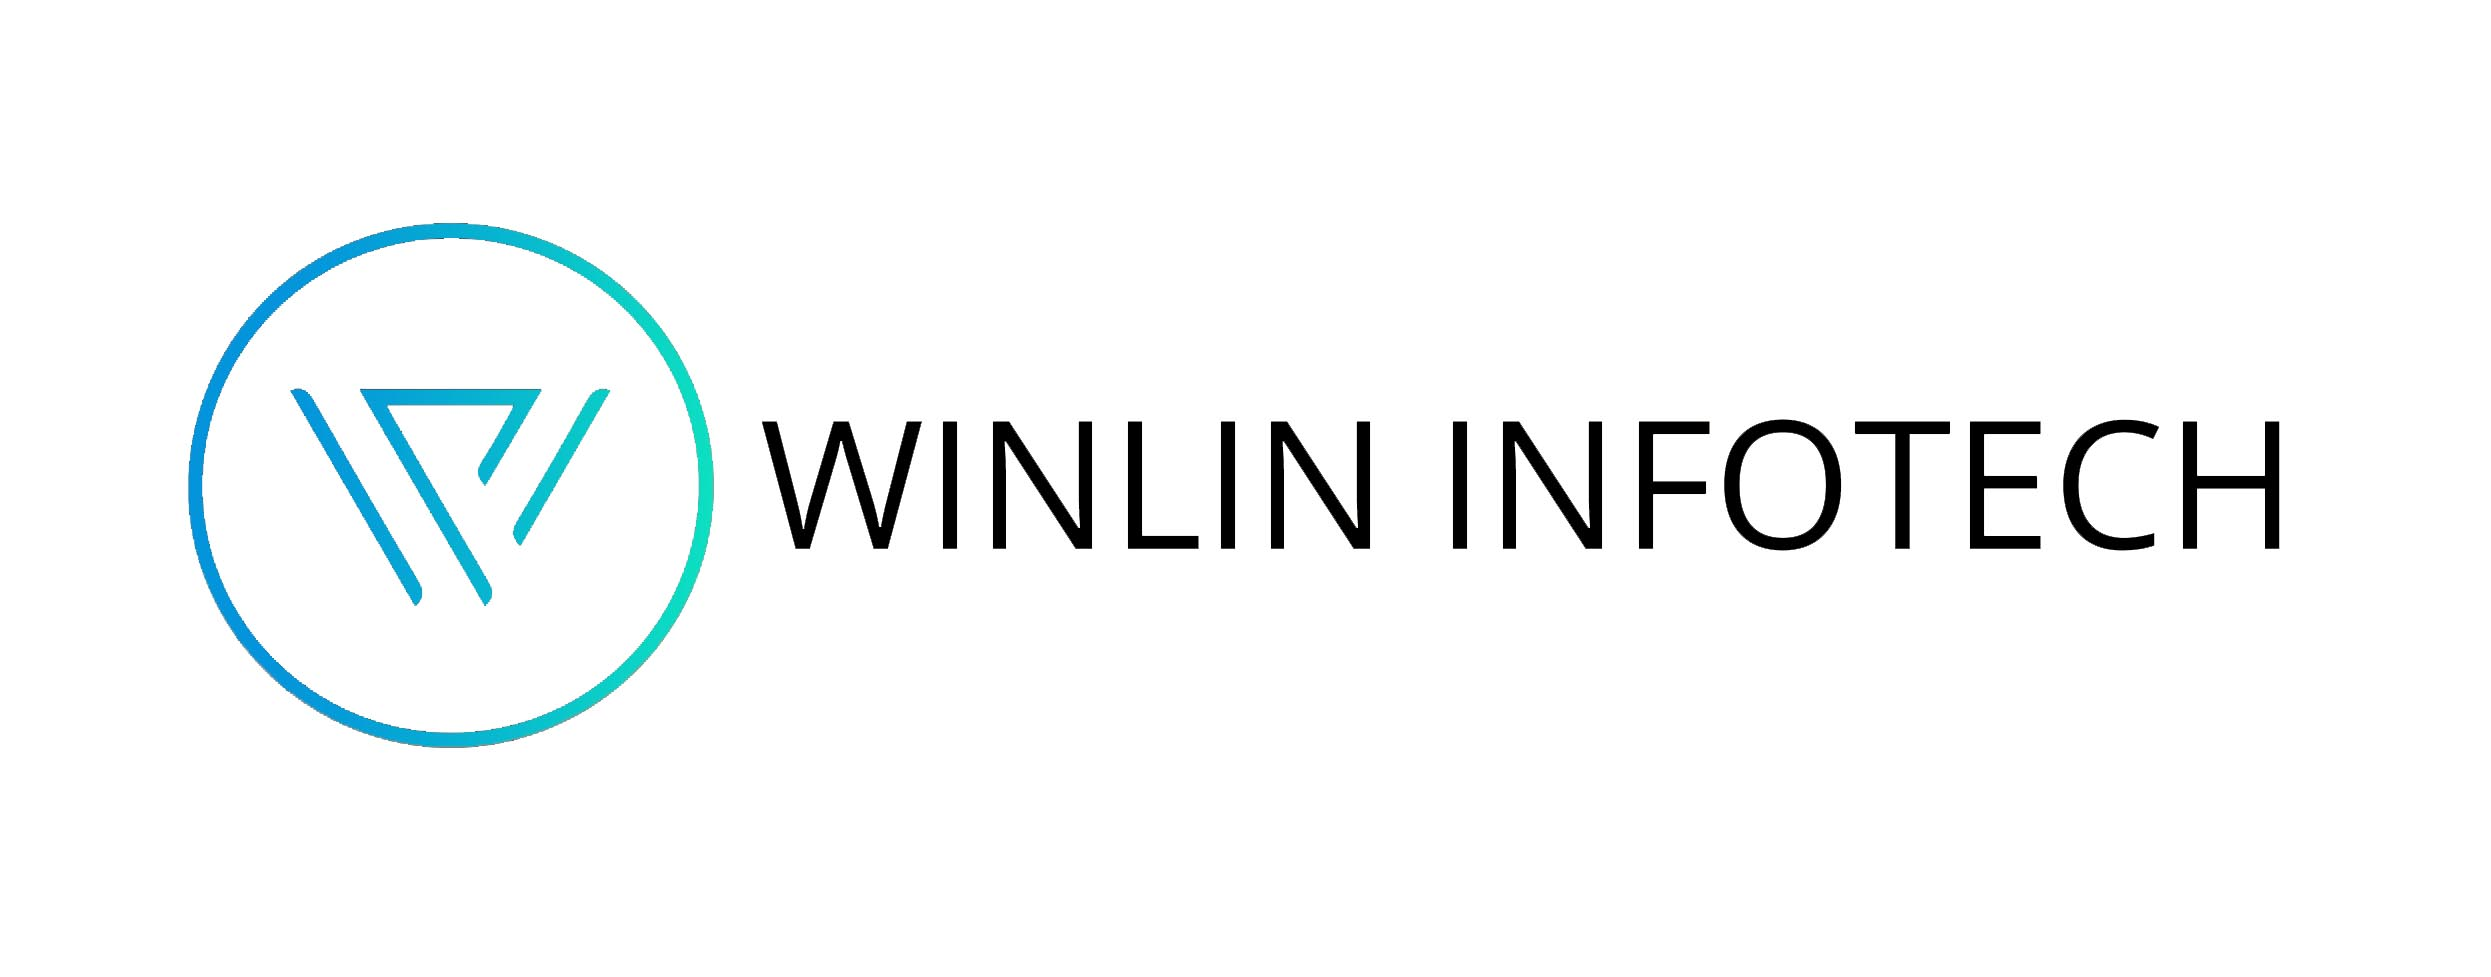 Winlin Infotech India Private Limited - Management company logo